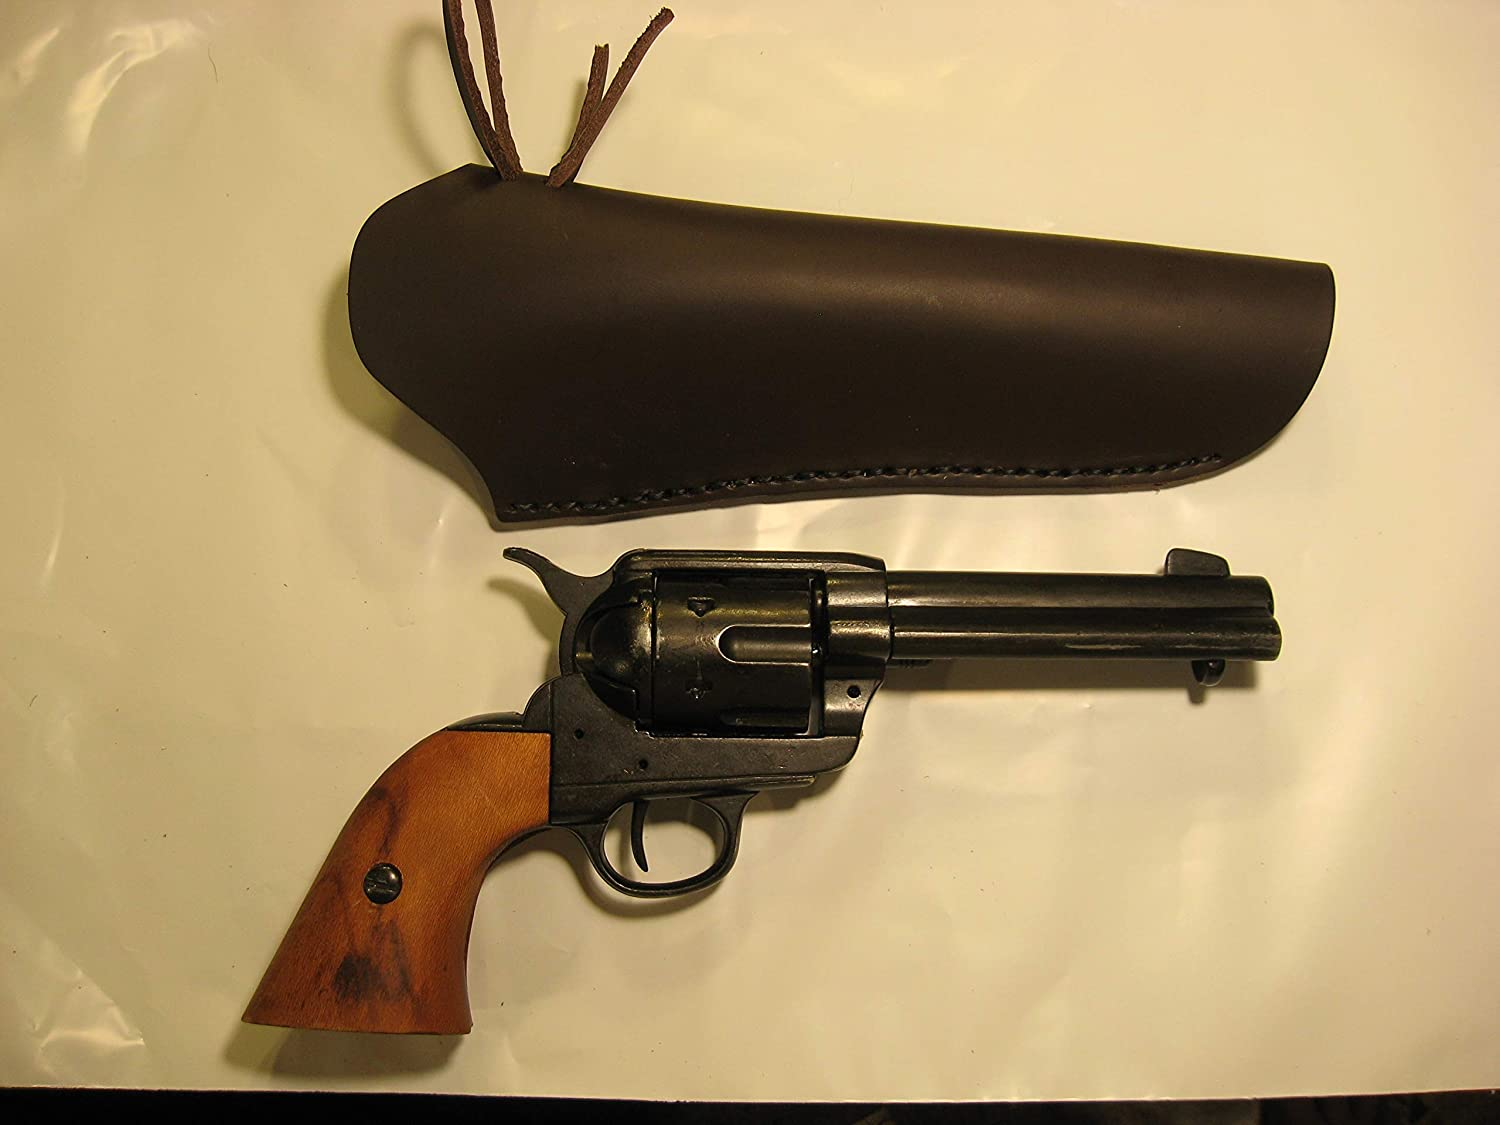 Western Leather Cross Draw Revolver Holster L High material 2 Challenge the lowest price of Japan ☆ 4-1 for H or R